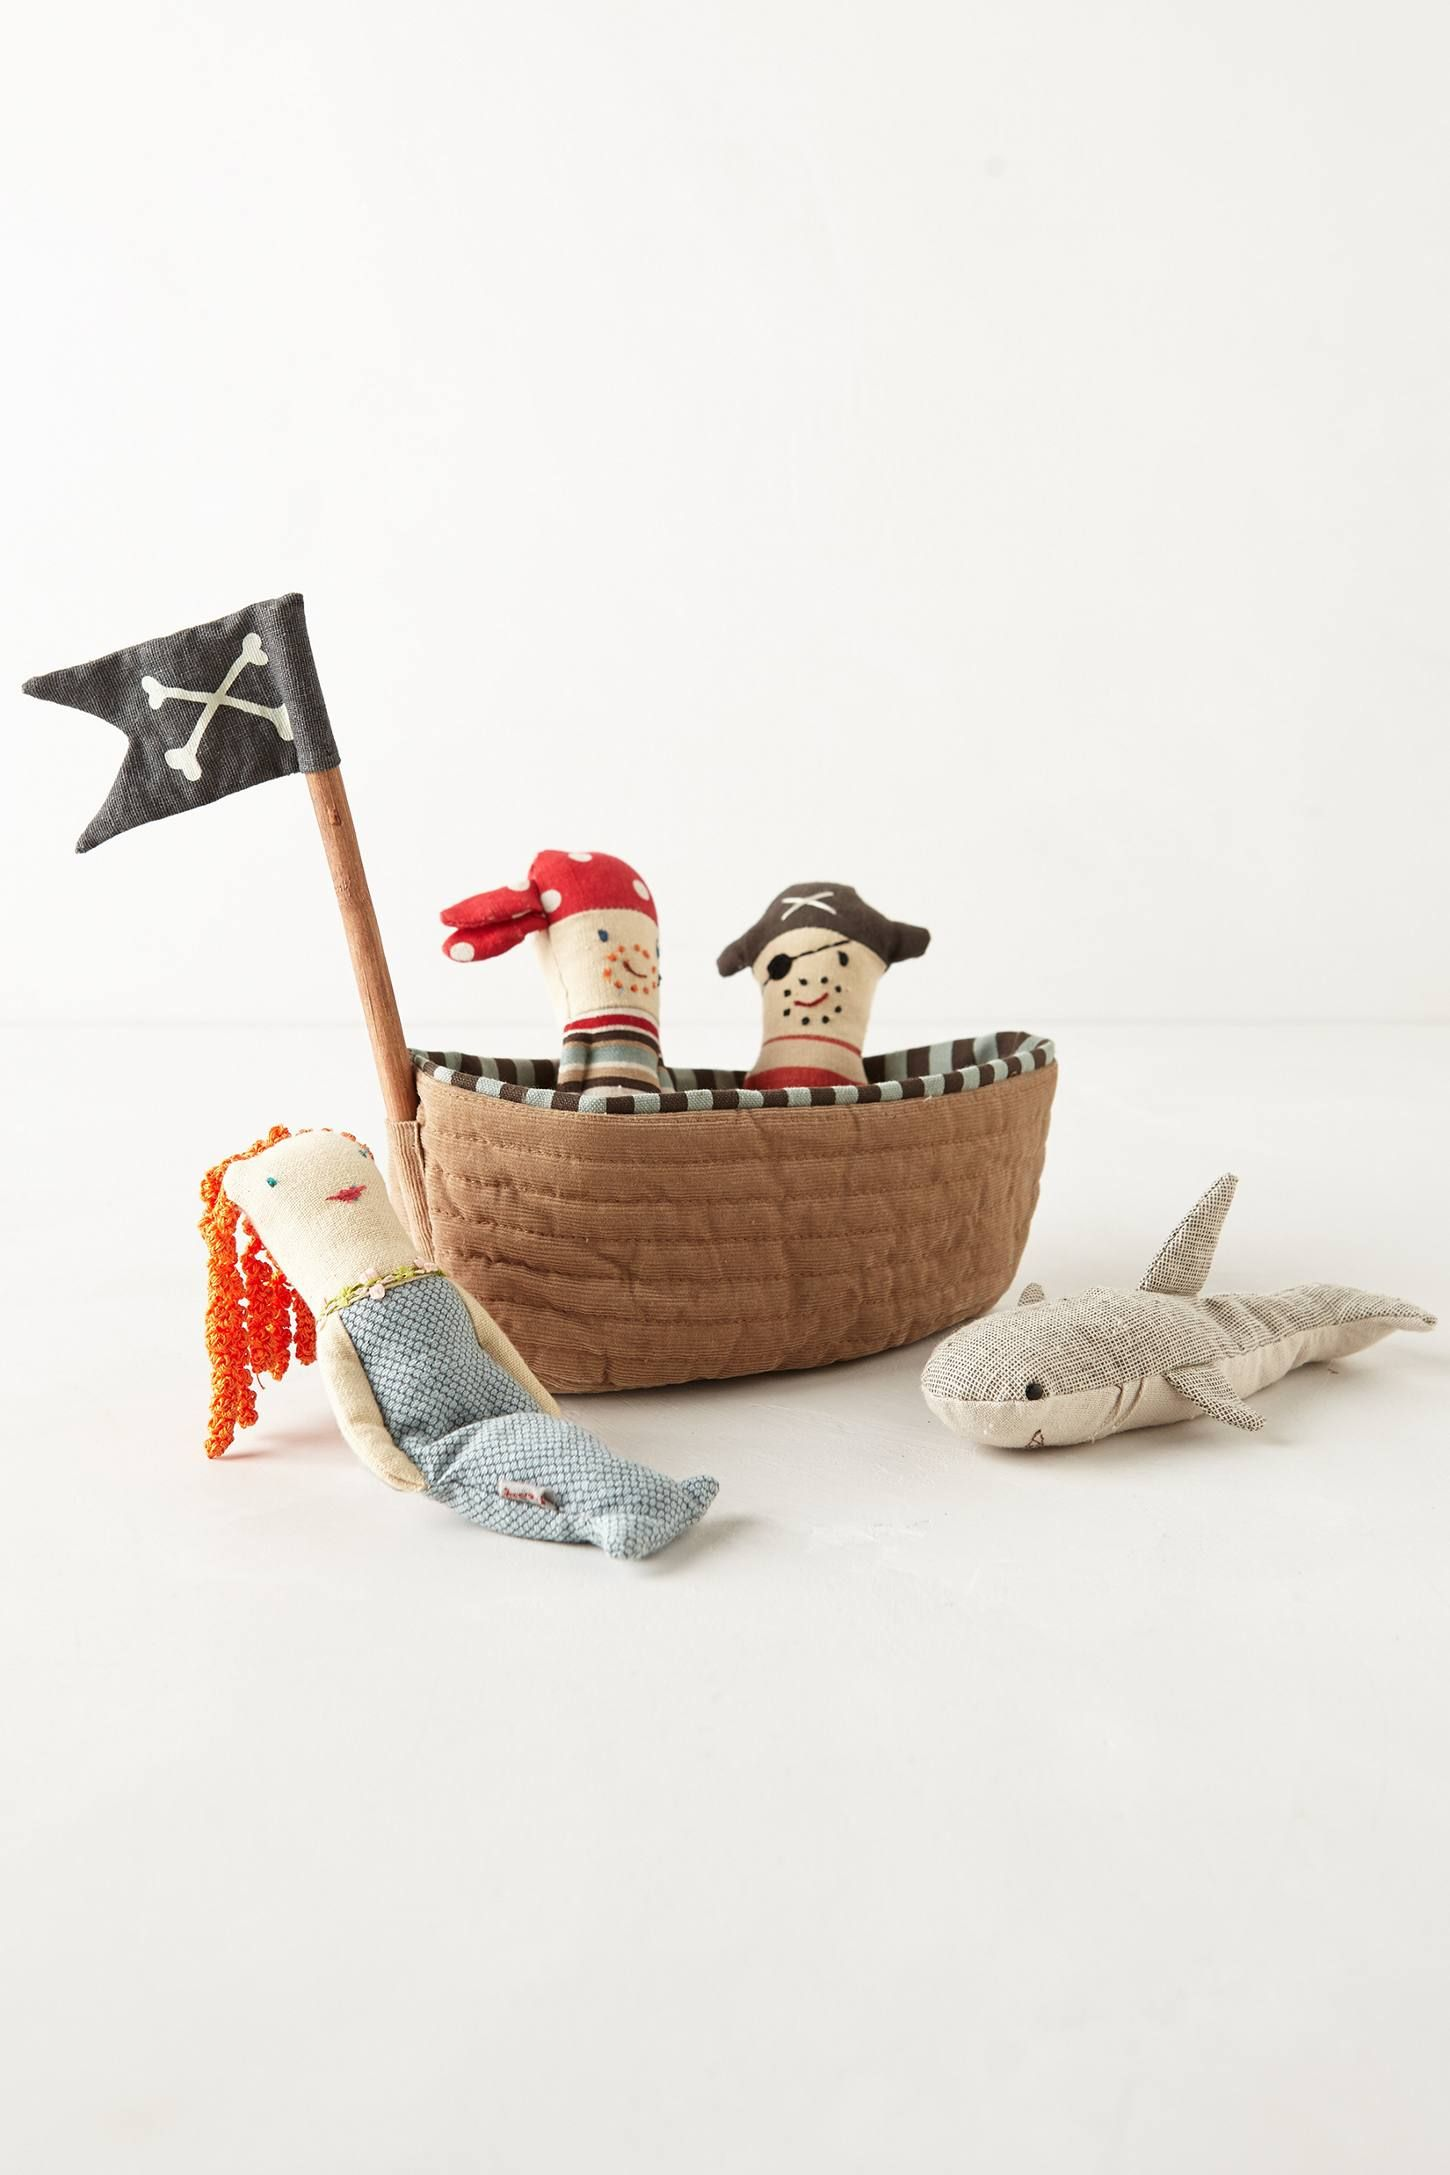 Pirate Ship Rattles - anthropologie.com